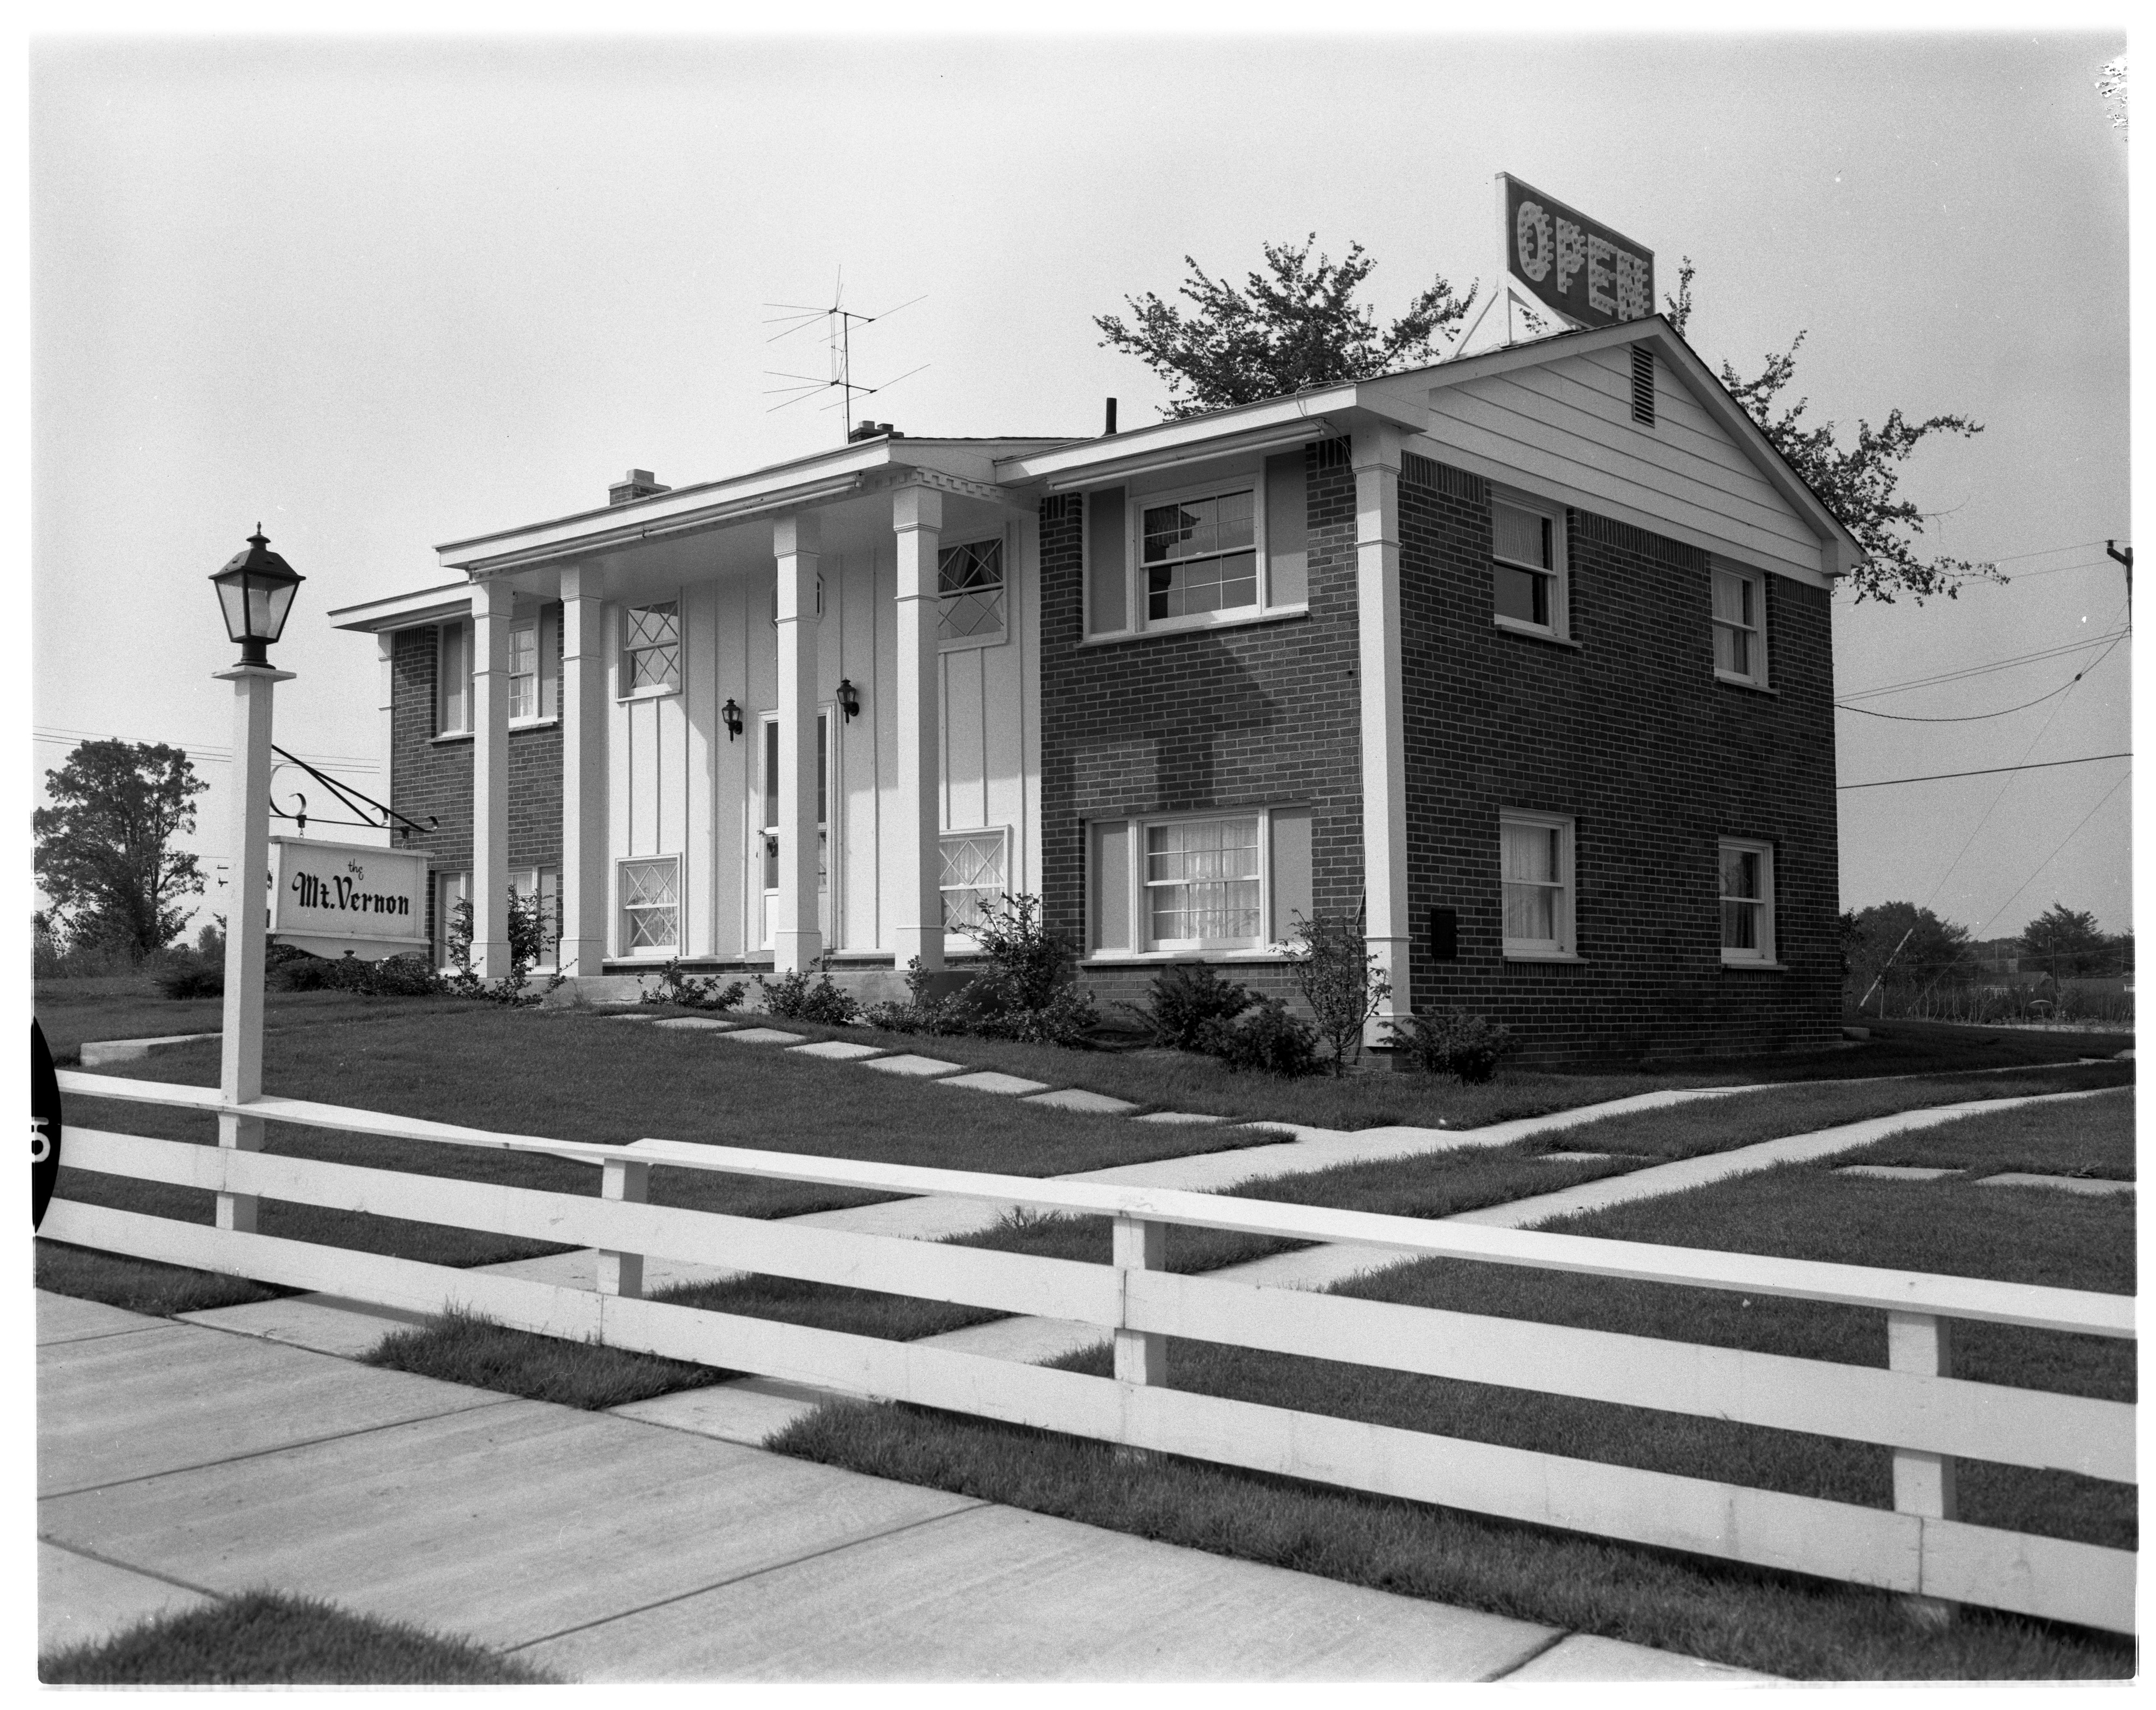 """Mt. Vernon"" Model Home in Forestbrooke Subdivision, September 1960 image"